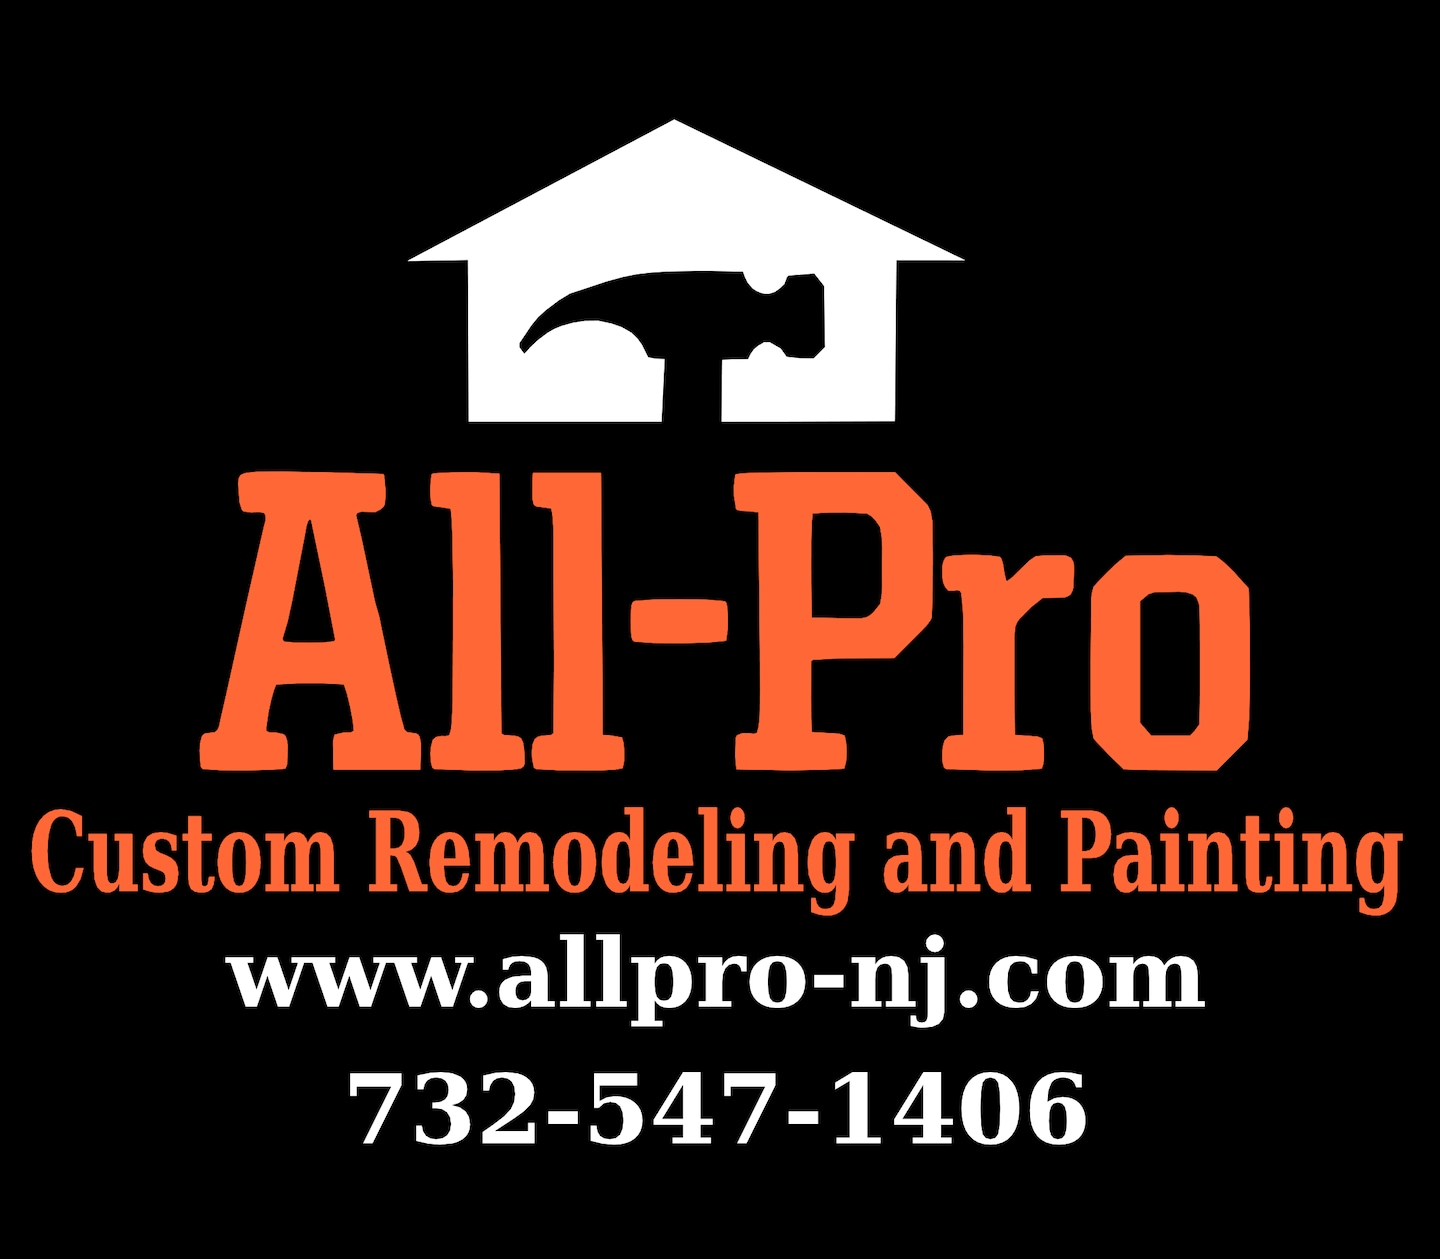 All-Pro Custom Remodeling & Painting LLC